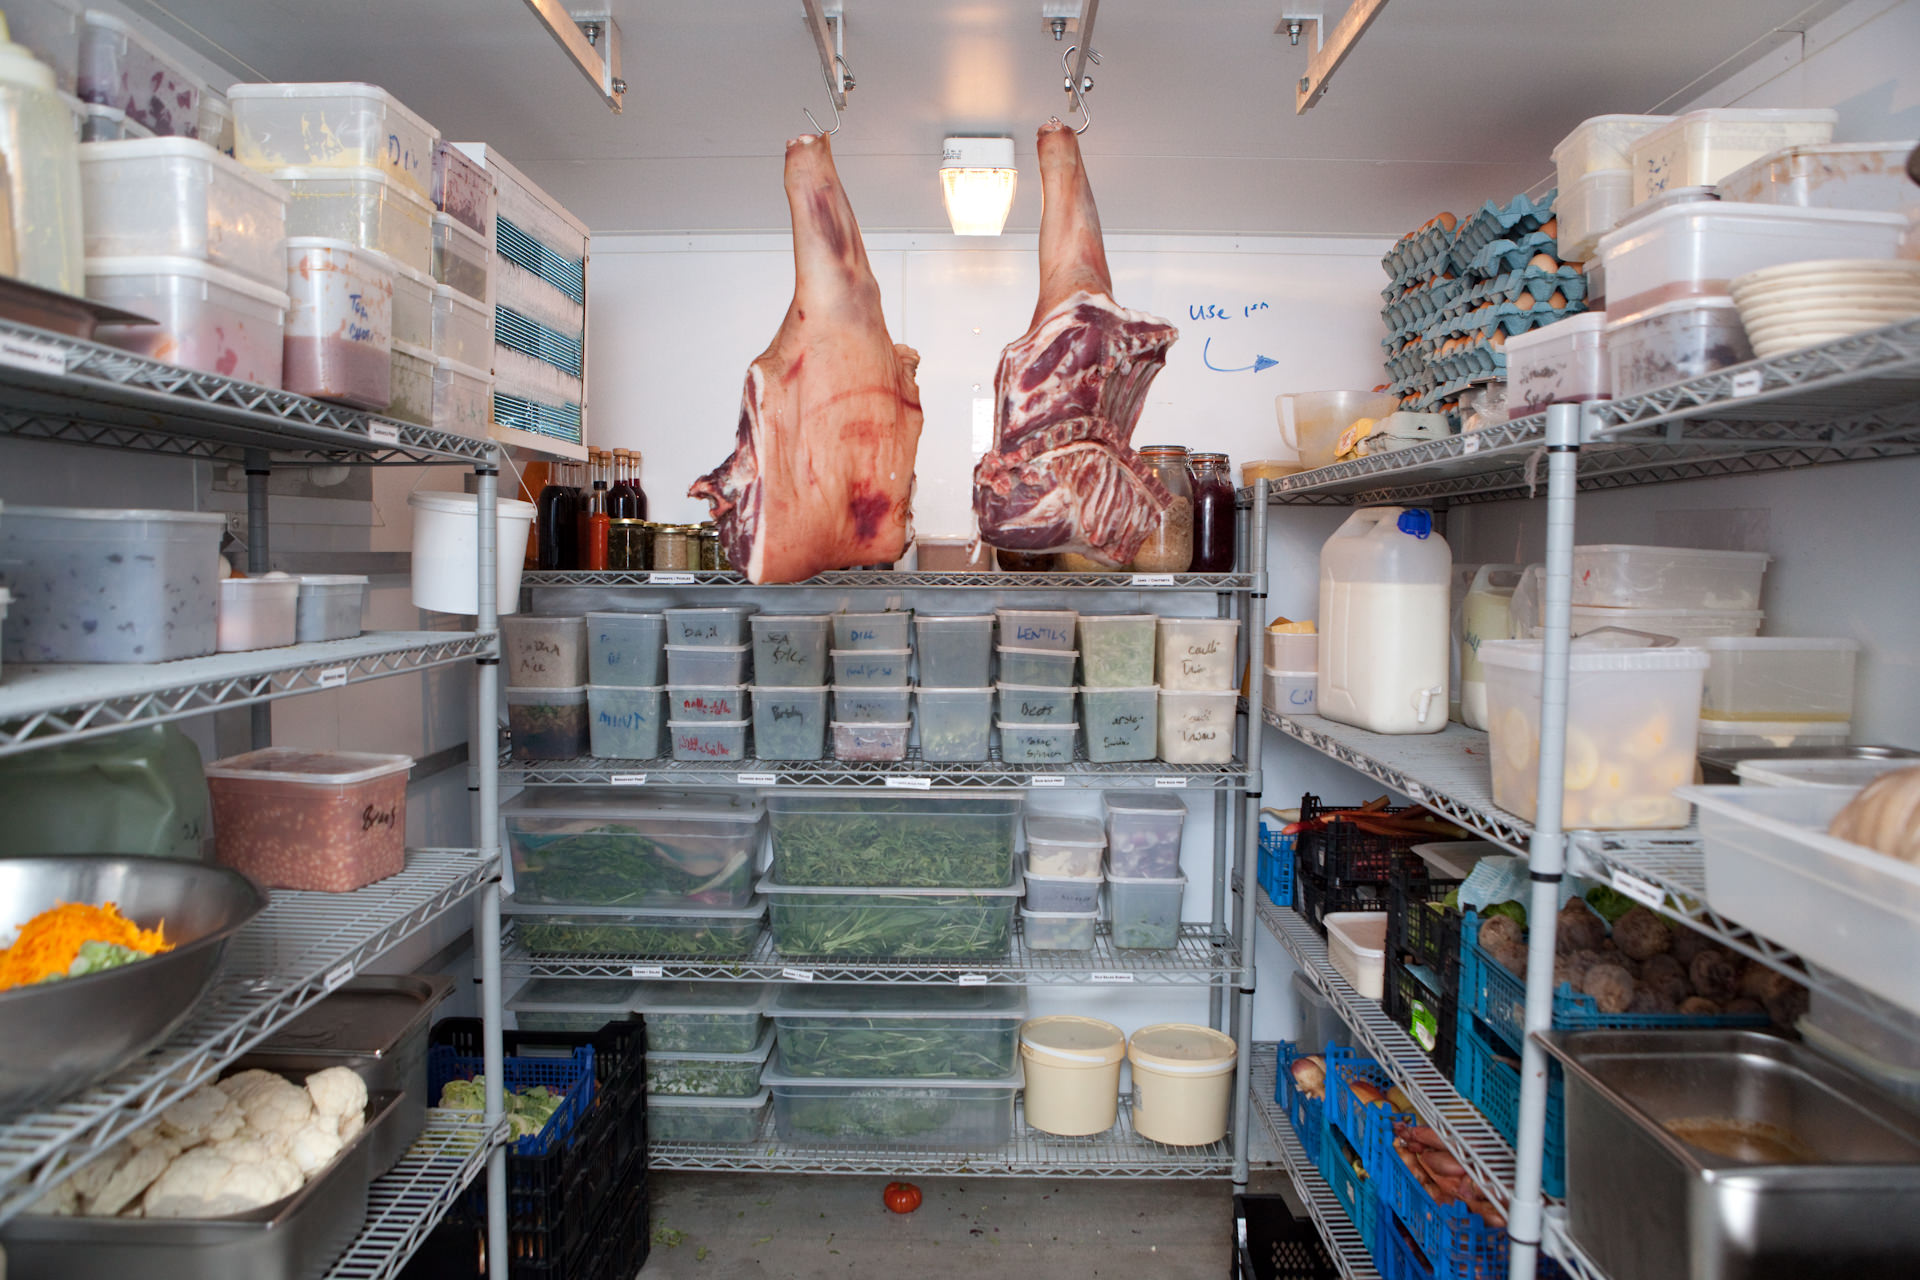 Food in the fridge storage. The pork is from a very small farm / local supplier called Jeremy.